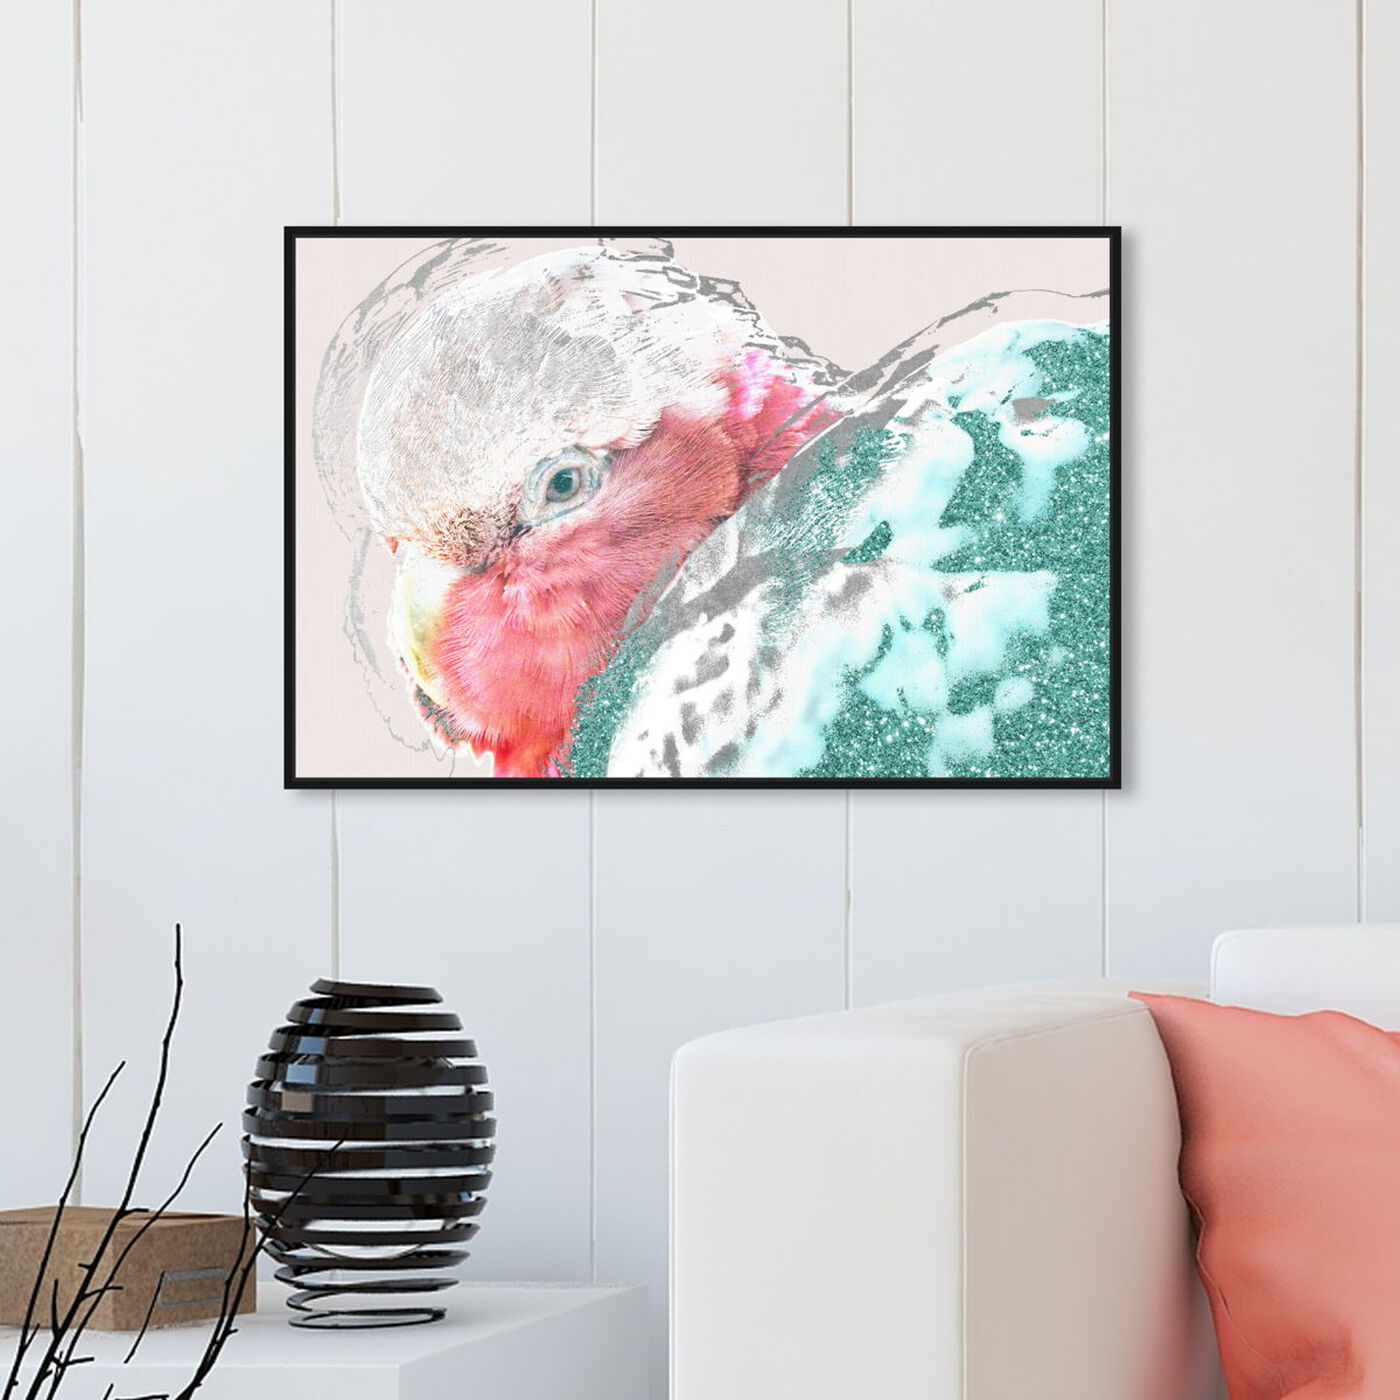 Hanging view of Galah featuring animals and birds art.